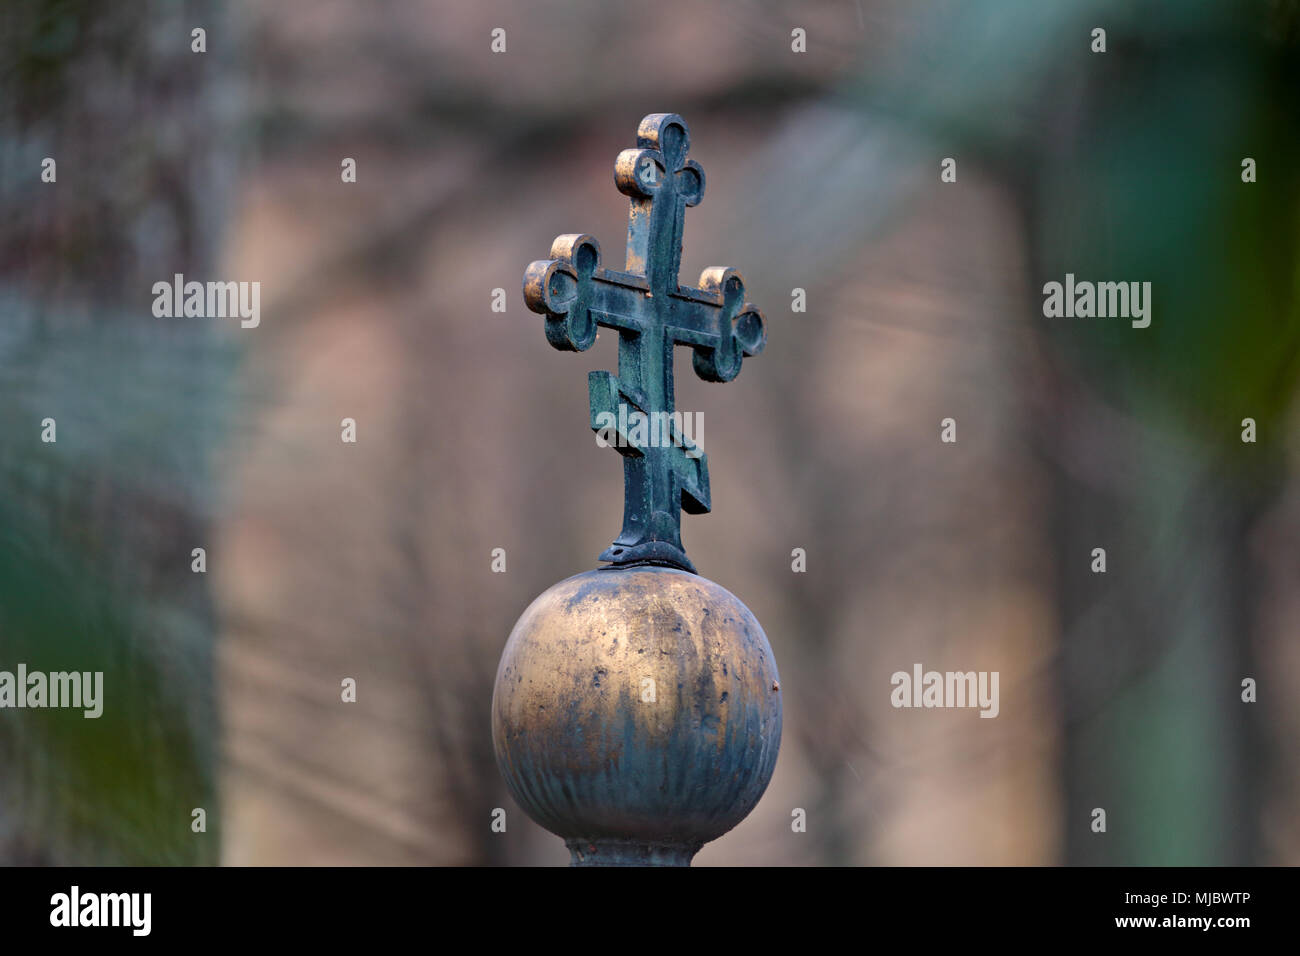 Old religious symbol made of brass in an old graveyard - Stock Image